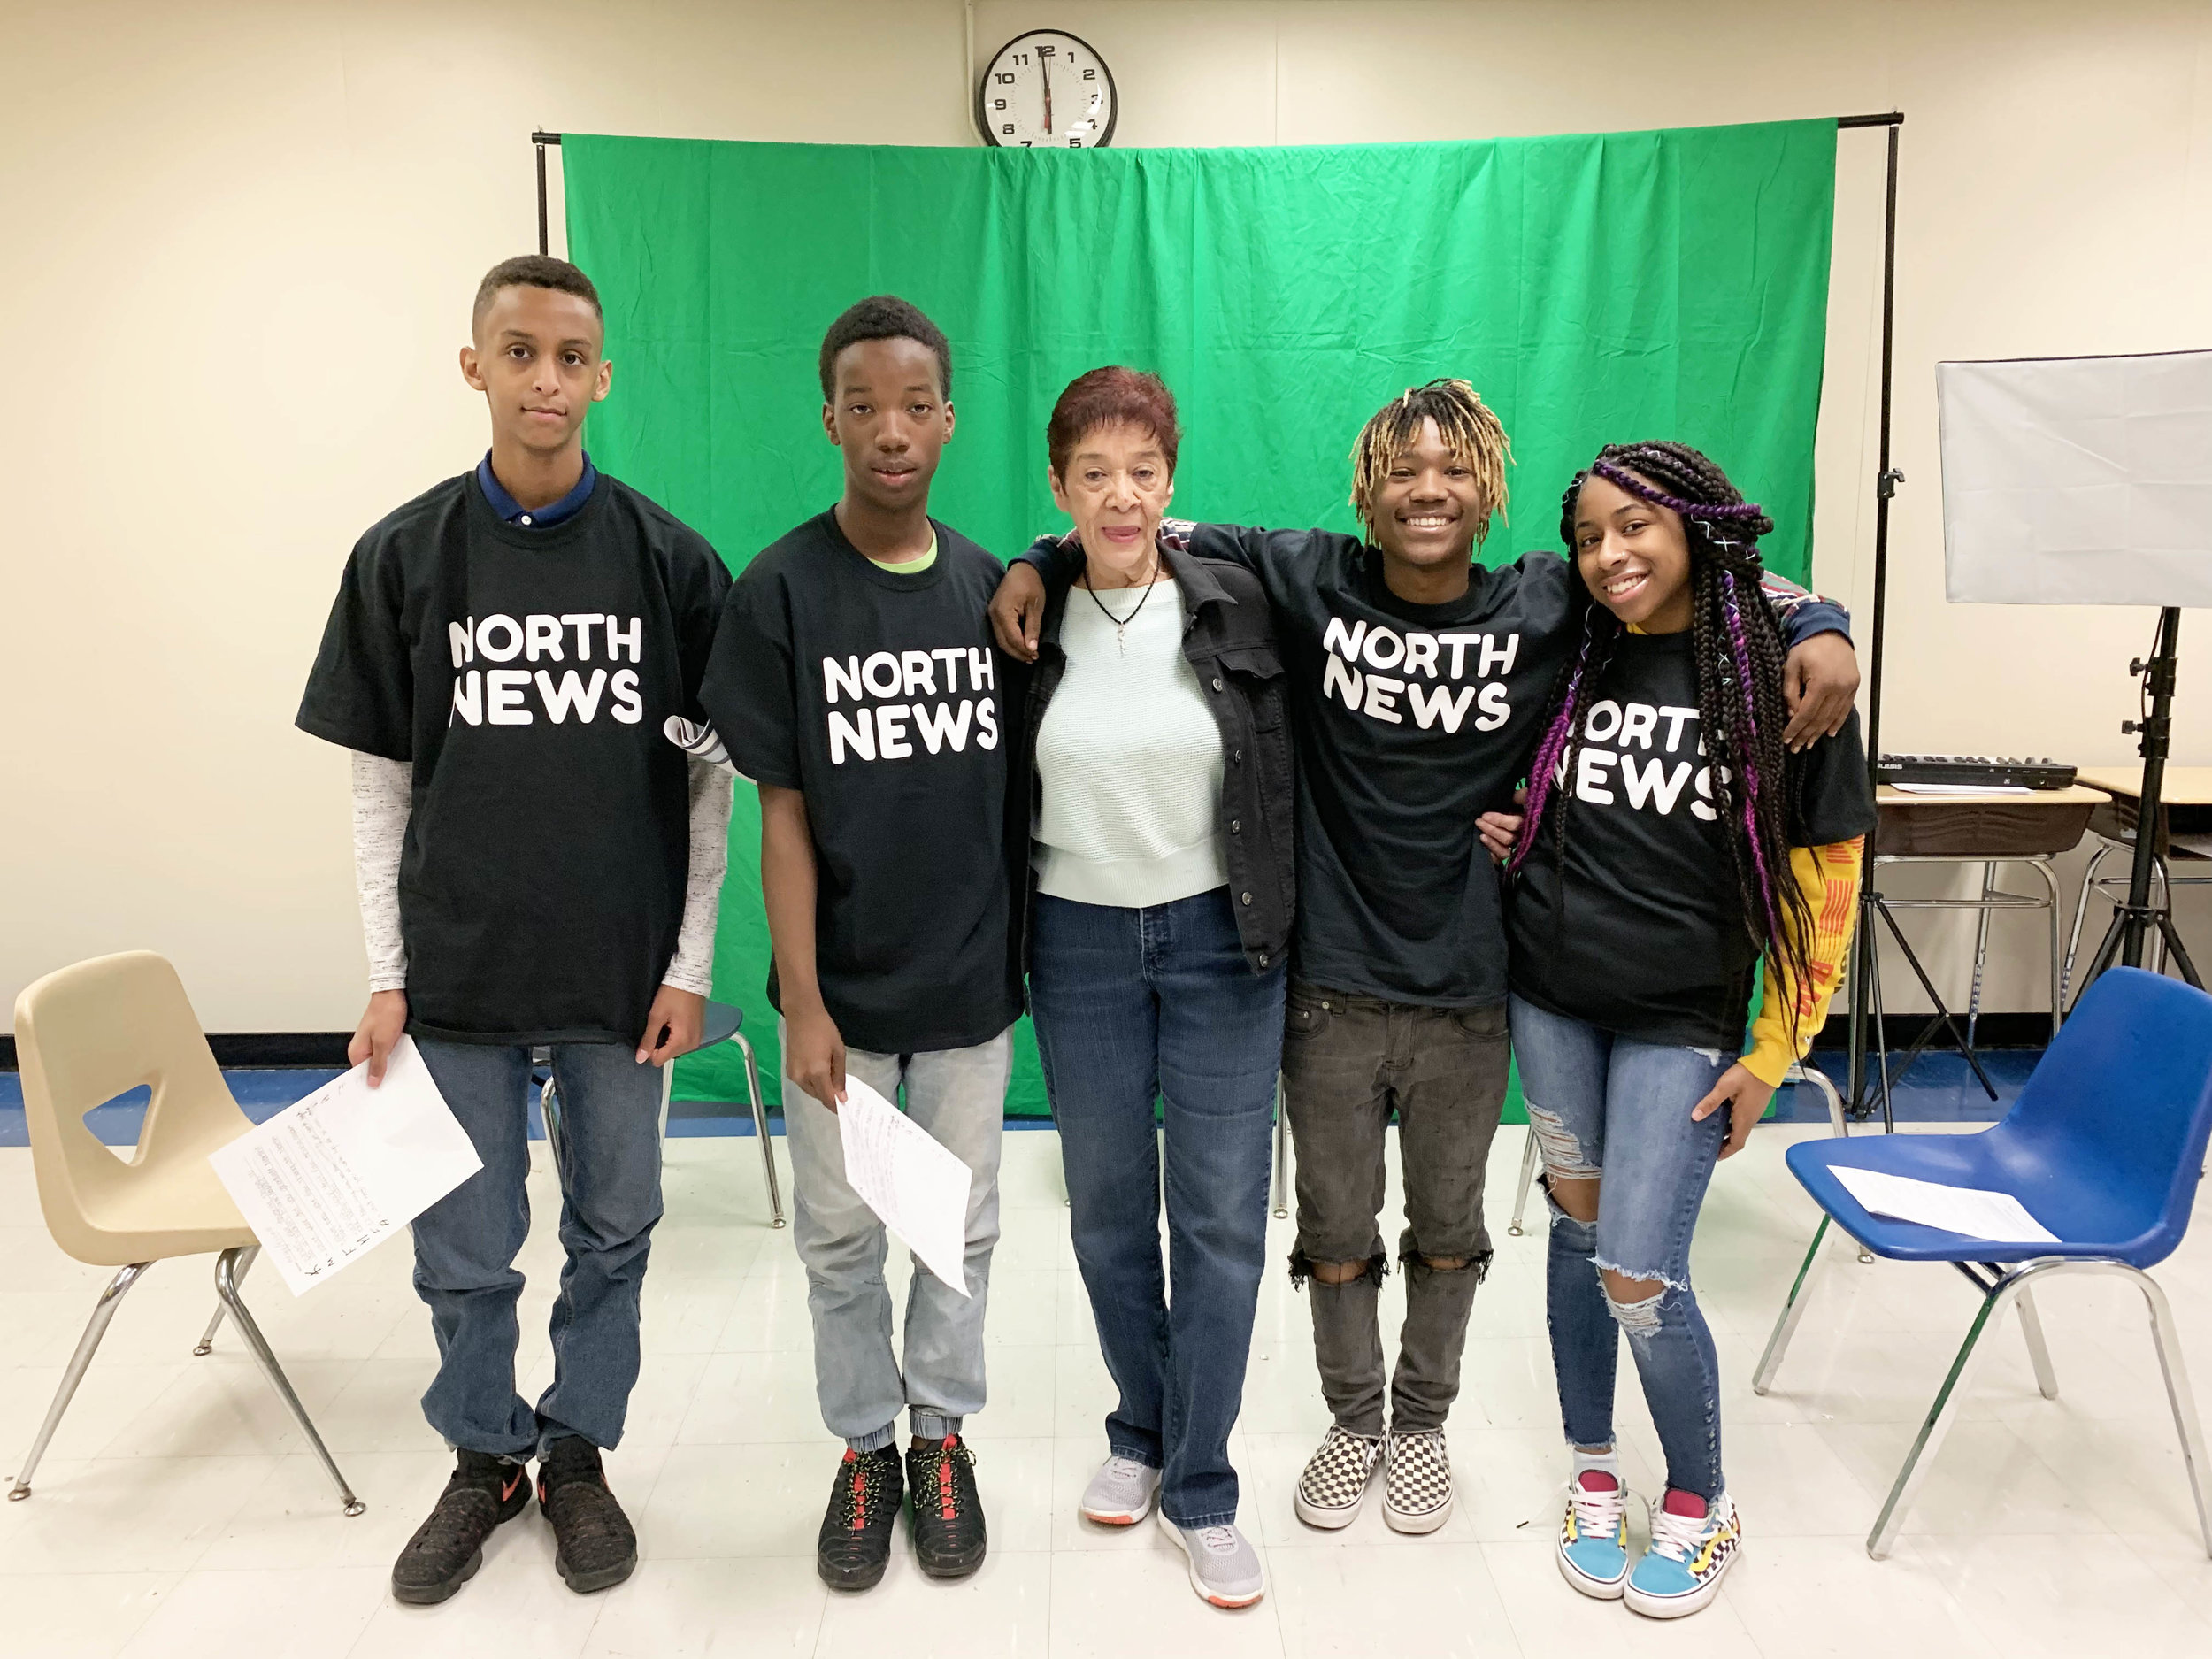 Lynne Crockett visited the North News journalism class at North High School in April for an interview with four student journalists.  Photo by Kenzie O'Keefe